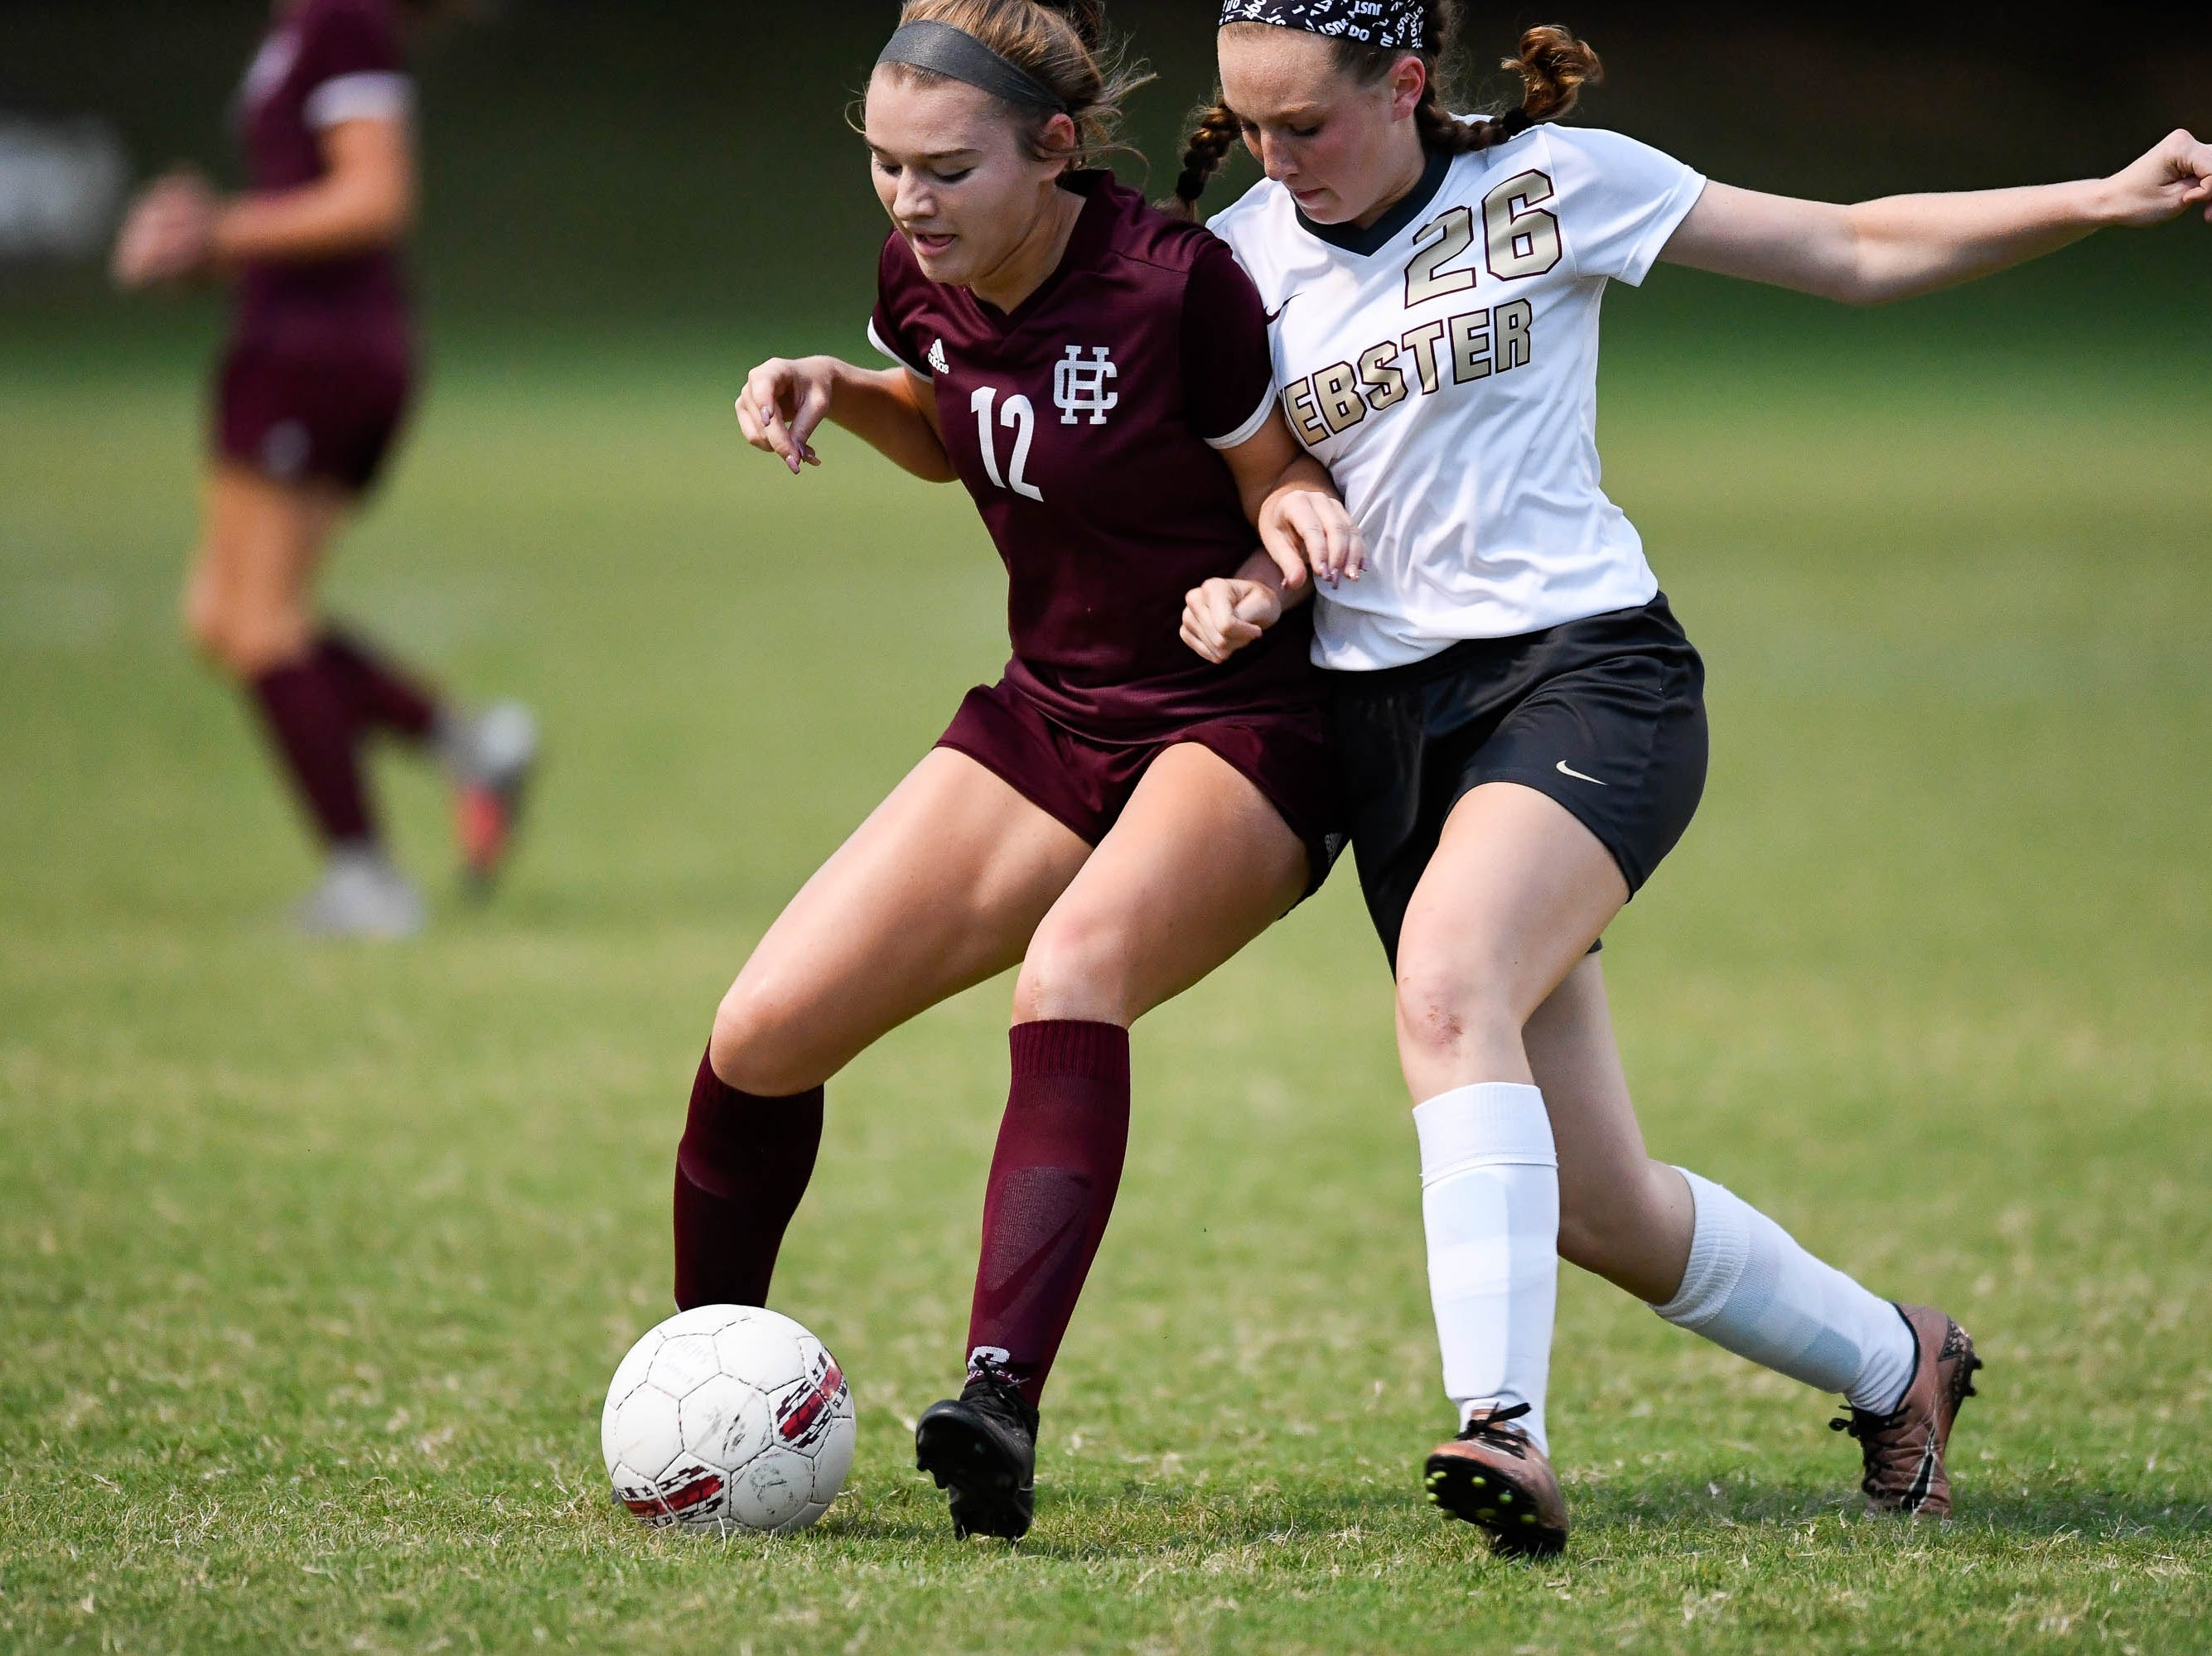 Henderson's Whitnie West (12) and Webster's Marissa Austin (26) battle for the ball as the Henderson County Lady Colonels play the Webster County Lady Trojans in the Sixth District Soccer Tournament at Colonel Field Wednesdayt, October 10, 2018.